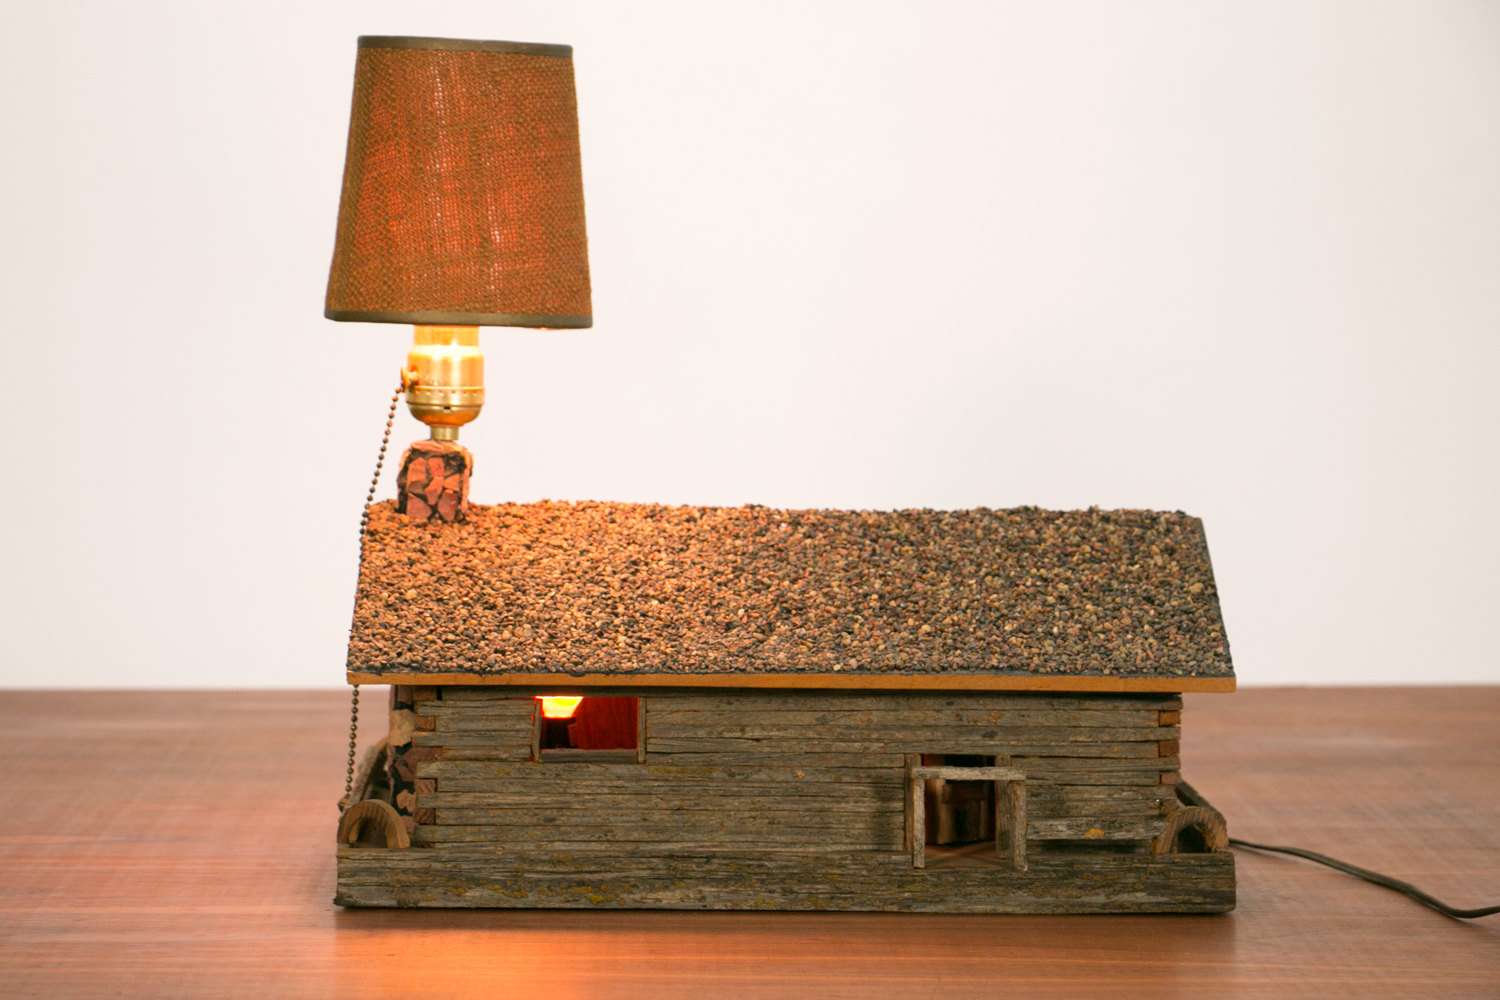 Vintage 1960's Handmade Rustic Mid Century Cabin Diorama Lamp // House, MCM, One of a Kind, Retro, Mod, Architectural